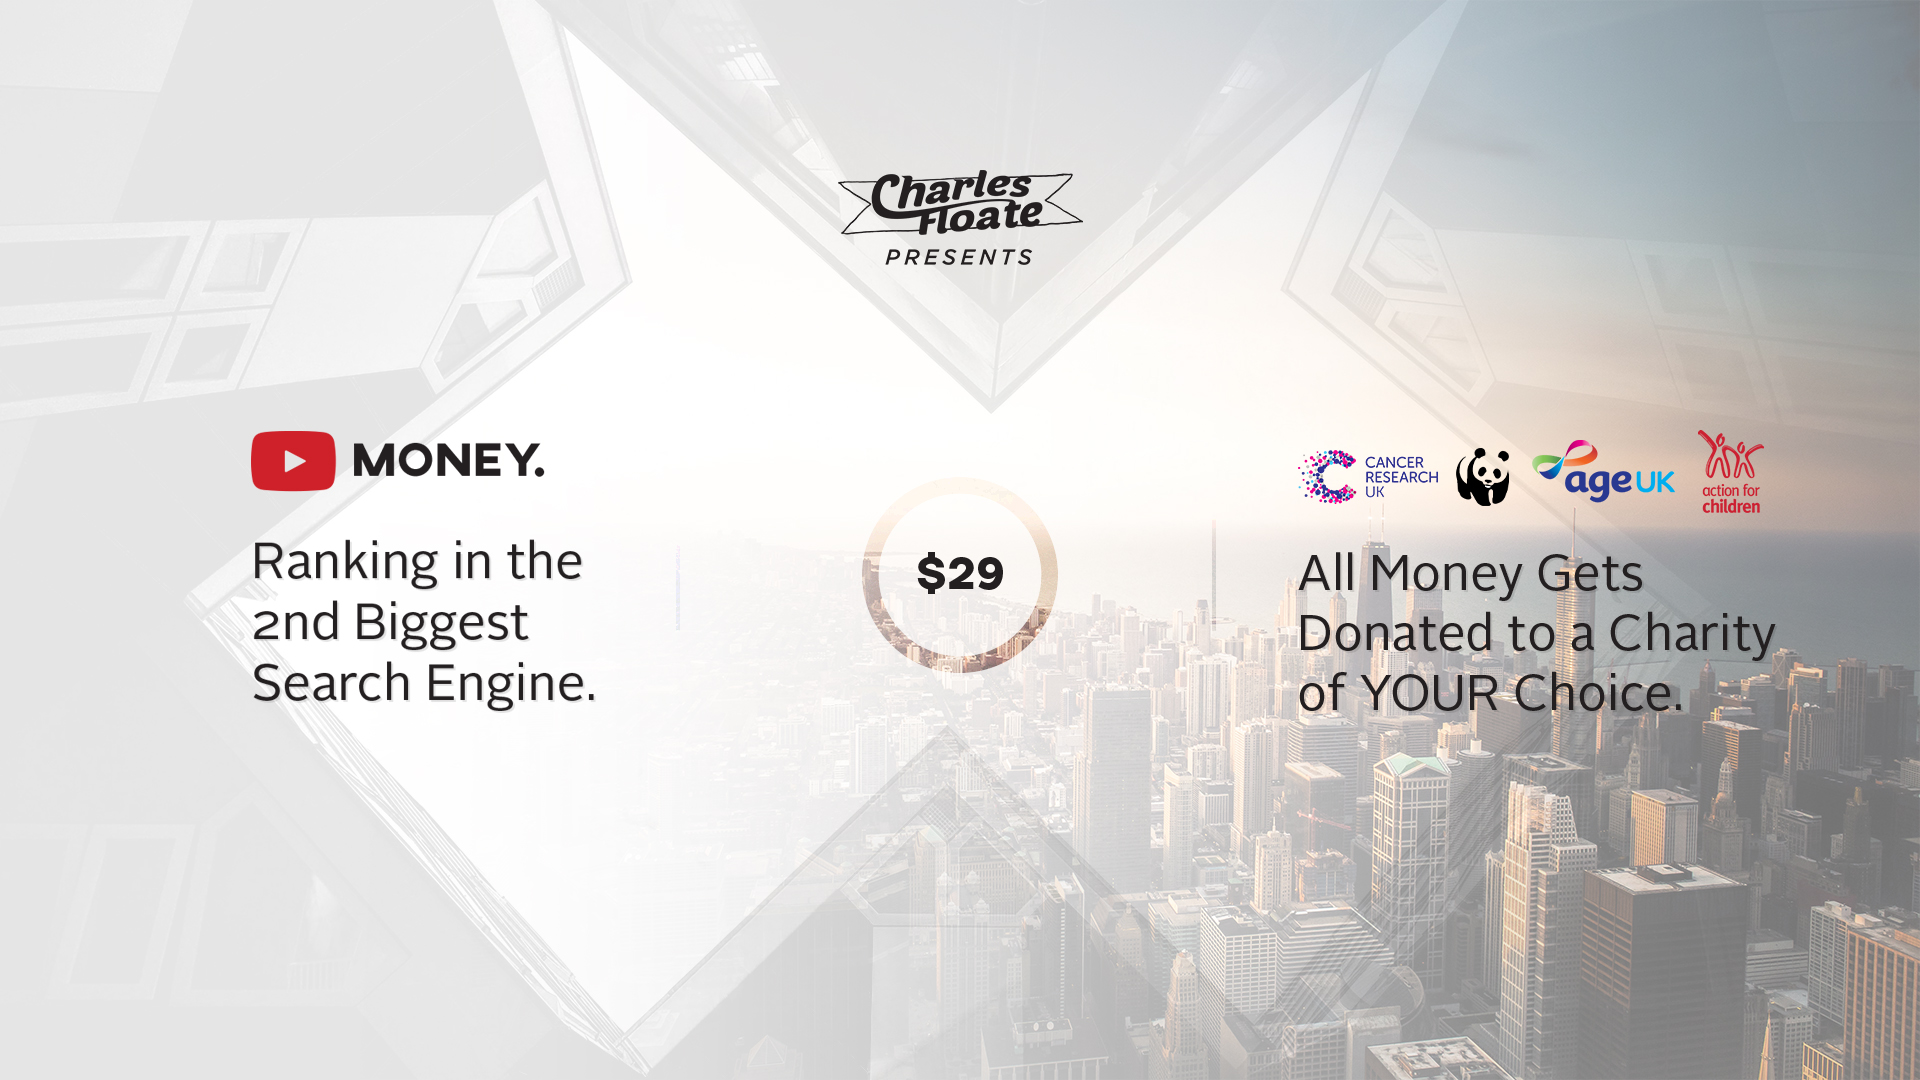 YouTube Money - Ranking in the 2nd Biggest Search Engine